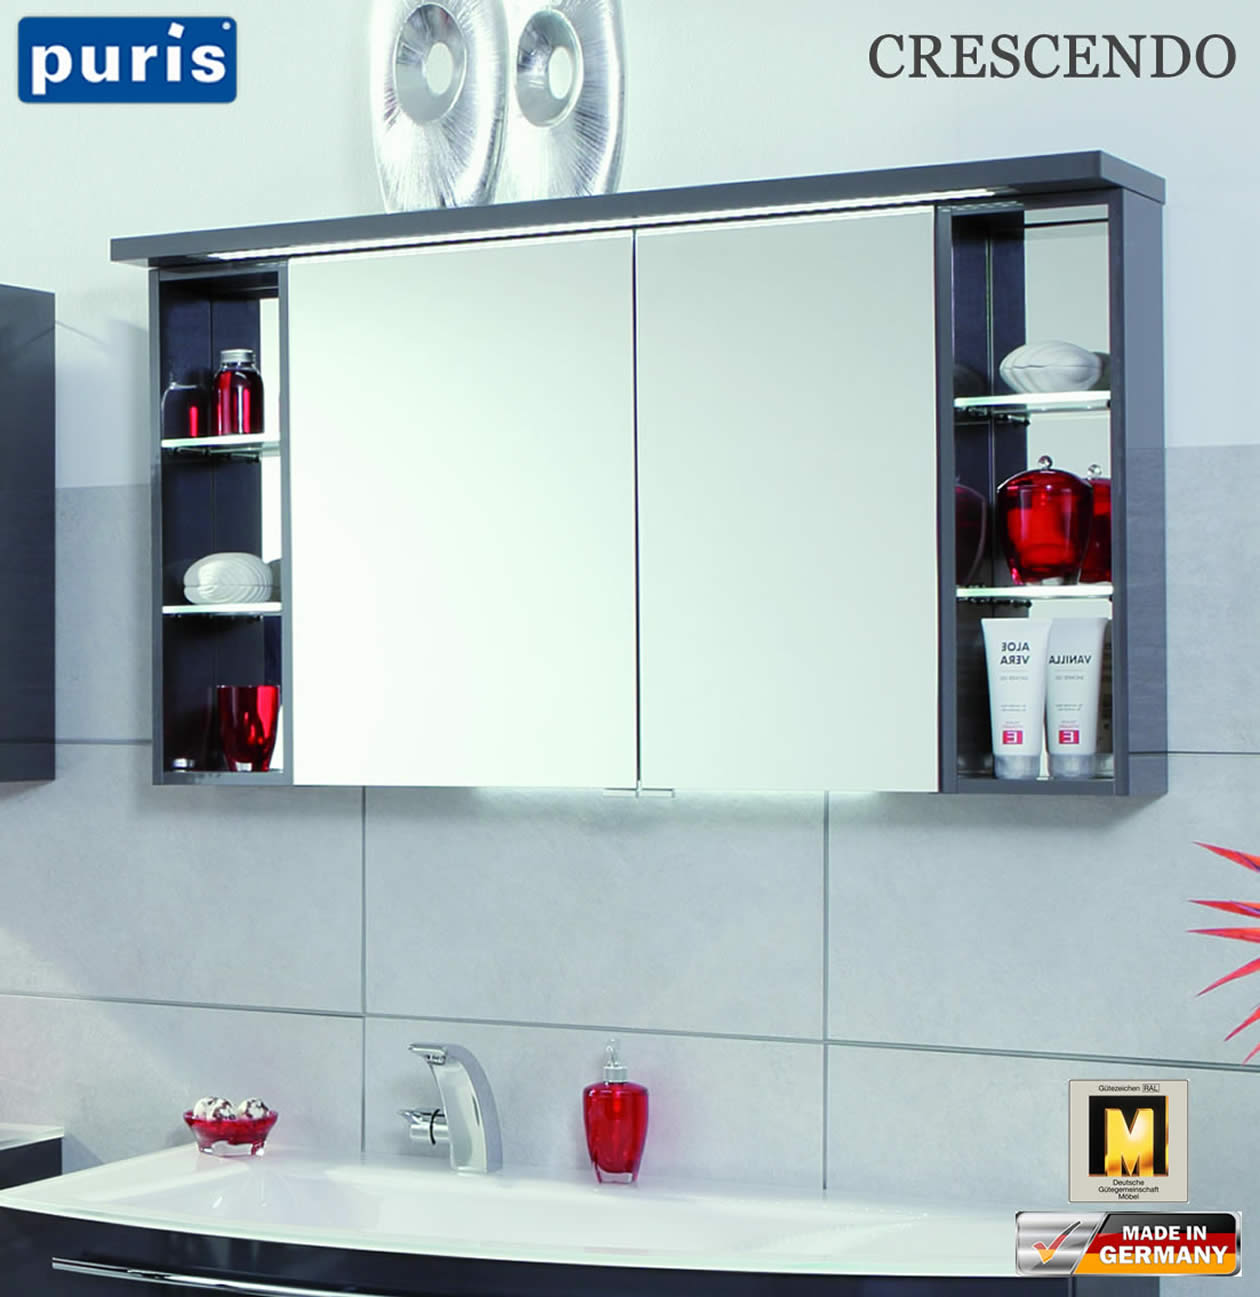 puris crescendo led spiegelschrank 120 cm s2a431226r. Black Bedroom Furniture Sets. Home Design Ideas